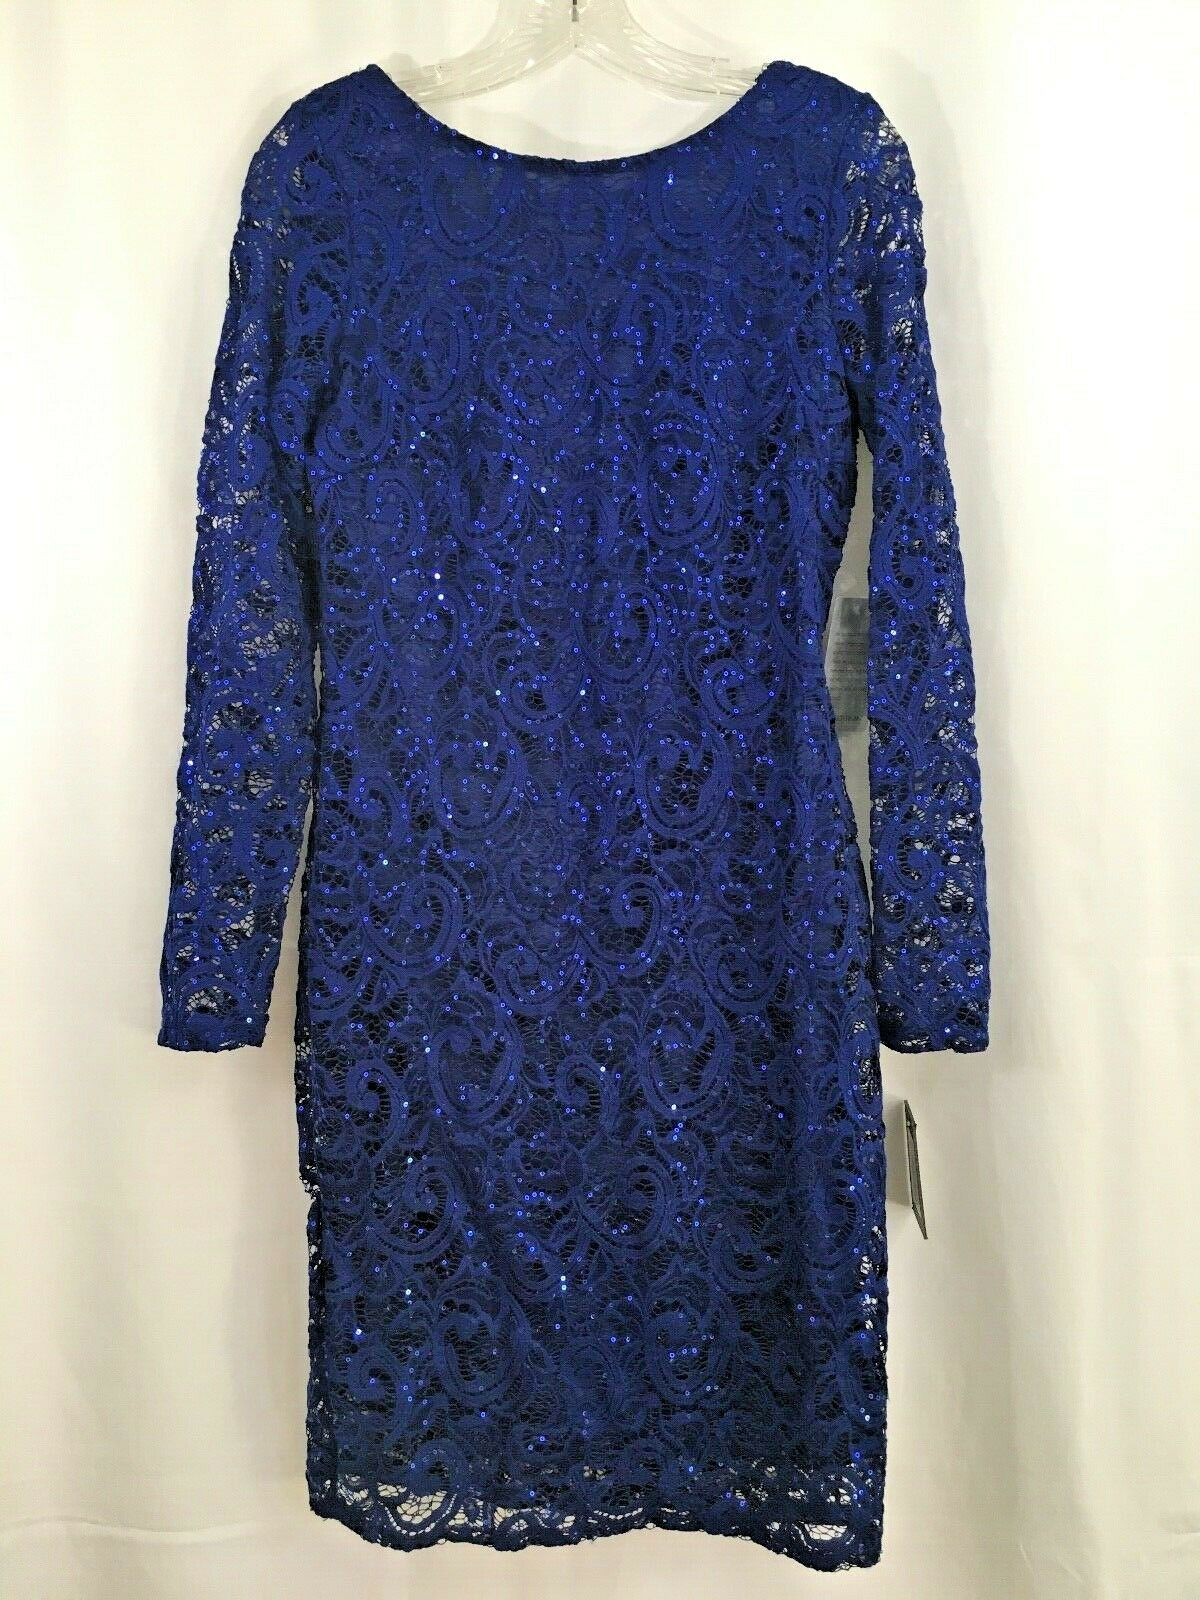 NWT Marina Woherren Long-Sleeve Cobalt Blau Lace Sequin Dress Low Back Größe 6